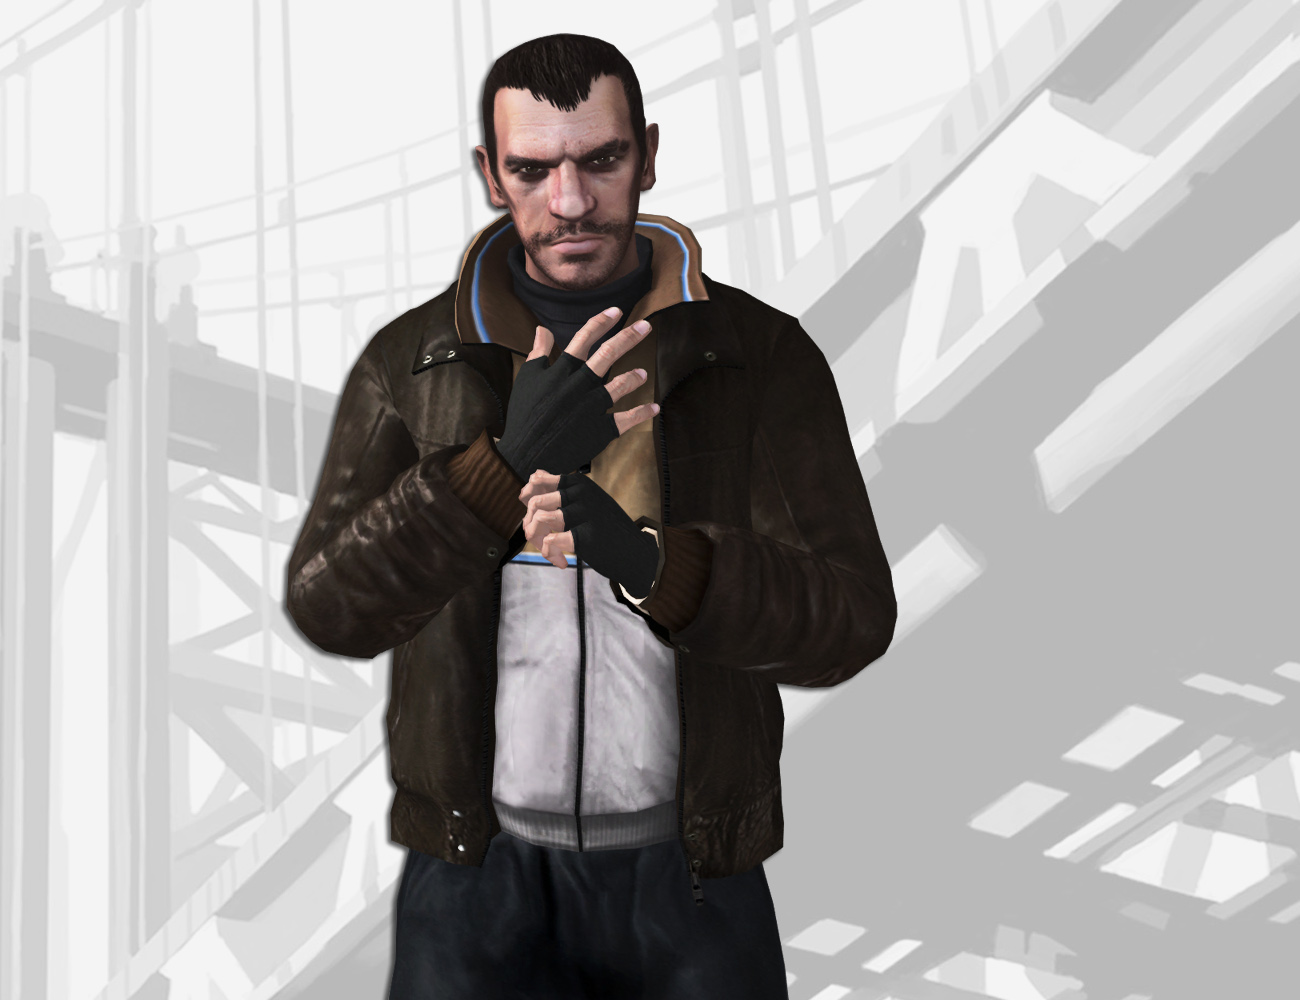 gta_iv_niko_bellic_artwork_in_xps_by_voggens_da6wpji